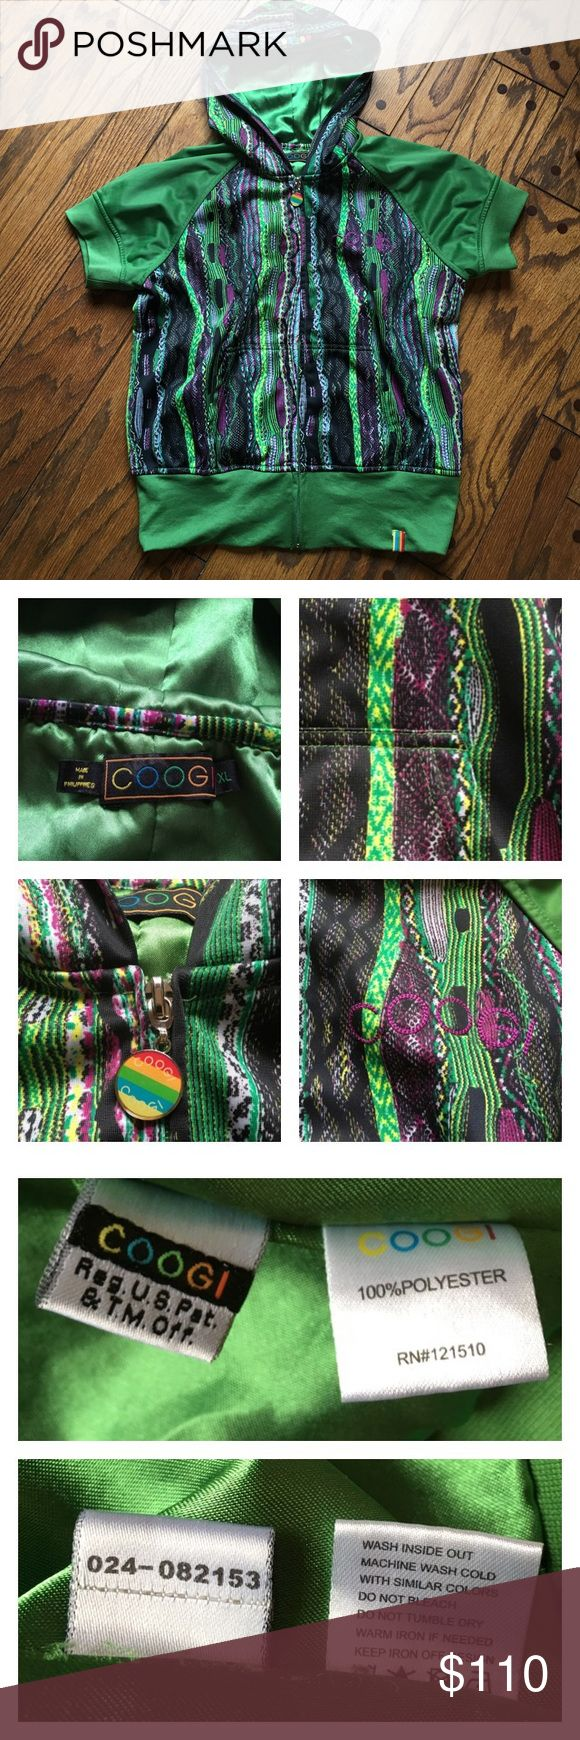 Like New COOGI Short Sleeve Zip-up Jacket •Green with purple, black, and white signature print, this one definitely stands out  •Satin lined  •short sleeves, hood, thick and comfortable  •Registered in the United States patent and trademark office  •size XL, slimmer fit, could fit looser medium to a more fitted xl  •like new condition and cute 😊💕   *Not all items are from smoke/pet free homes* COOGI Jackets & Coats